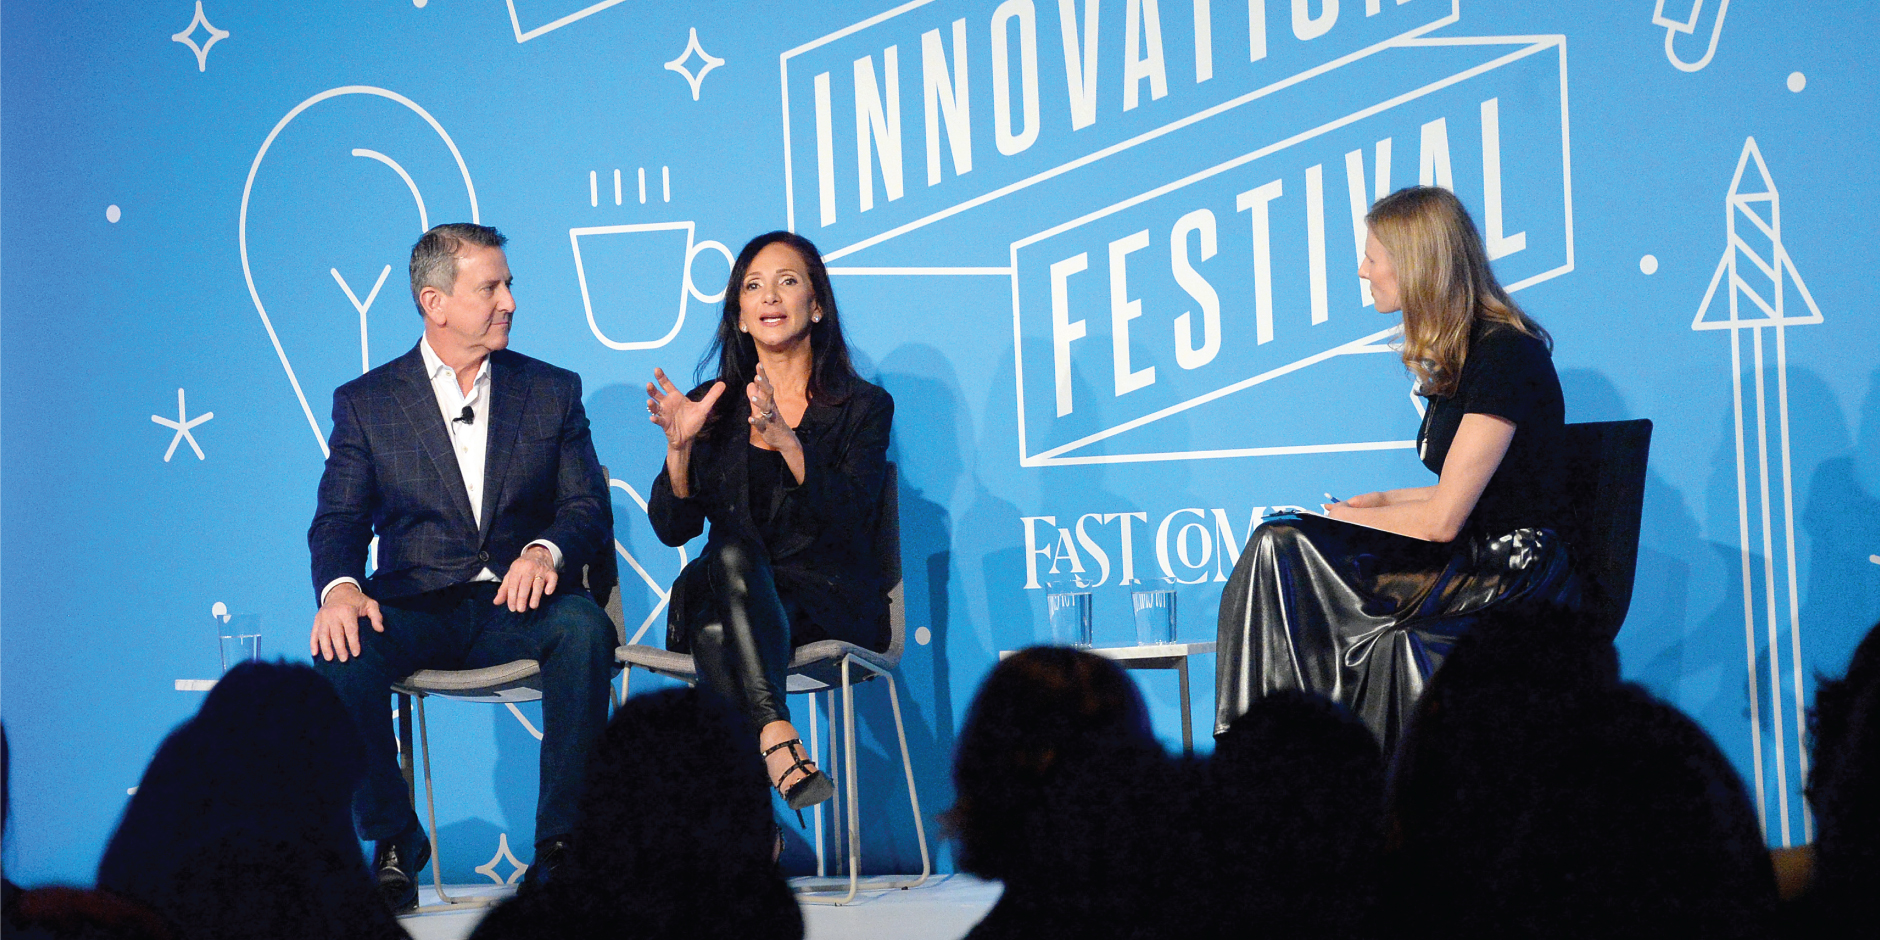 Brian Cornell and Ellen Latham sit in chairs onstage against a blue background in front of a crowd